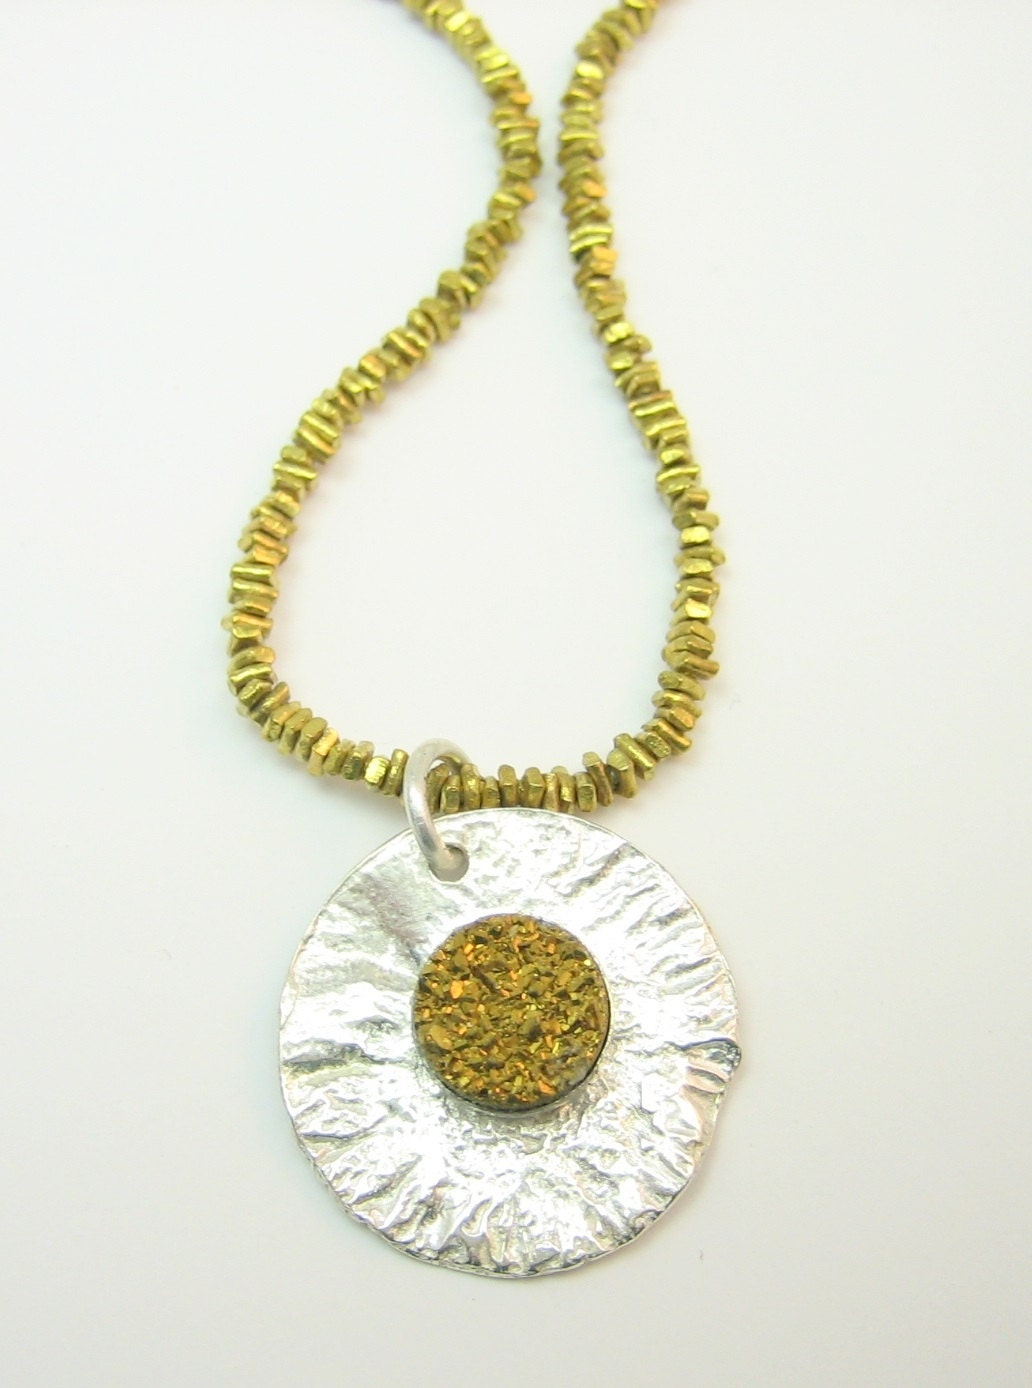 Hammered golden druzy quartz necklace with gold beads, artisan made two toned necklace with gold gemstone, gift for her, brass necklace